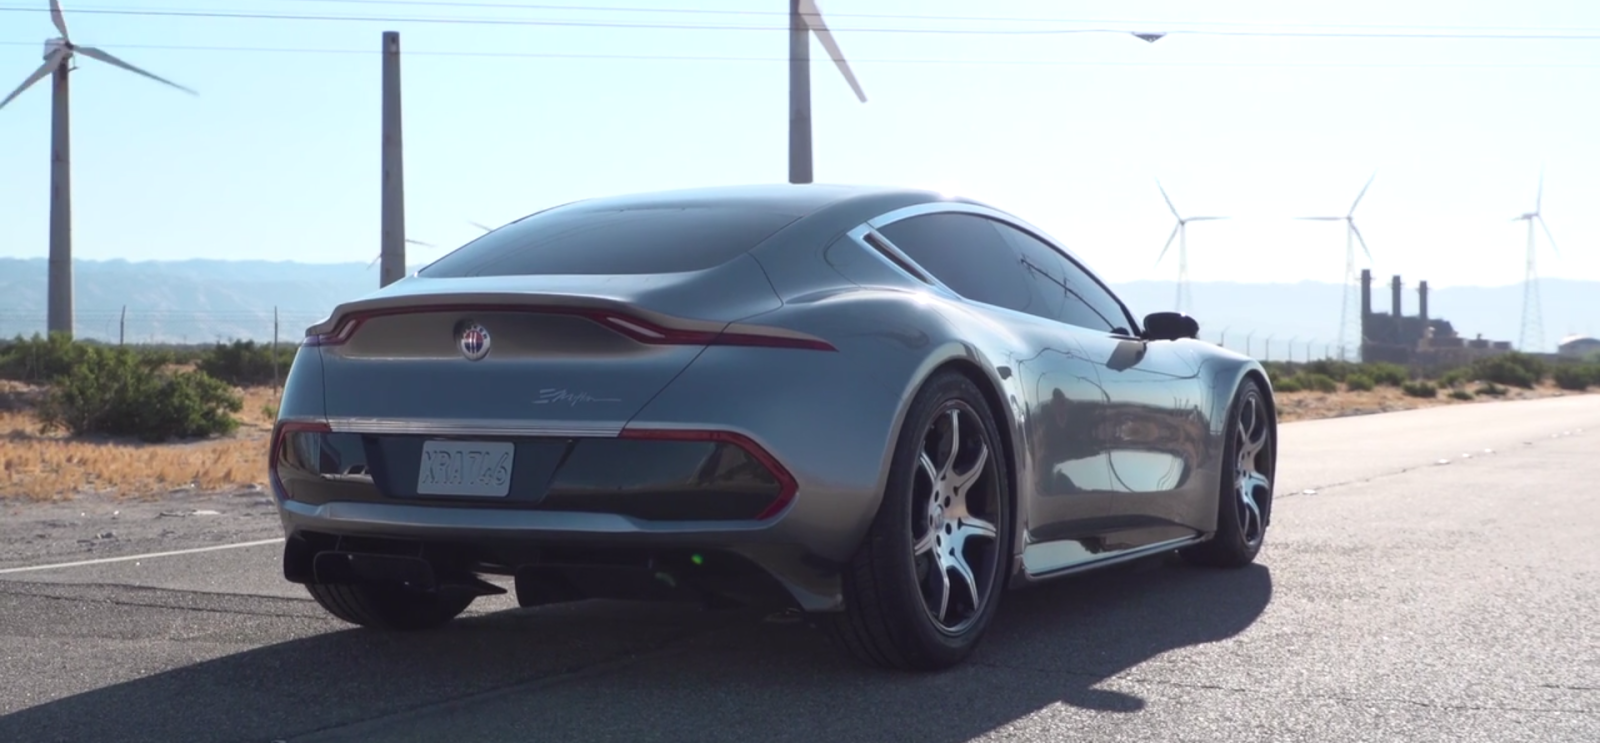 When Henrik Fisker relaunched its electric car startup last year, he ...